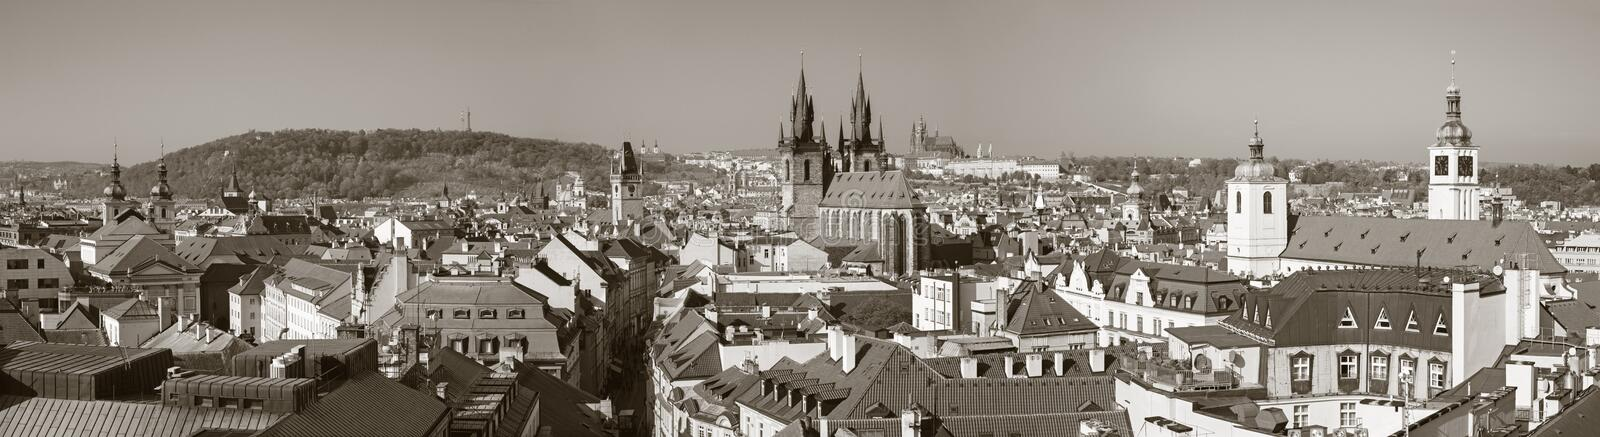 Prague - The panorama of the city with the Charles bridge and the Old Town  in evening light.  royalty free stock image